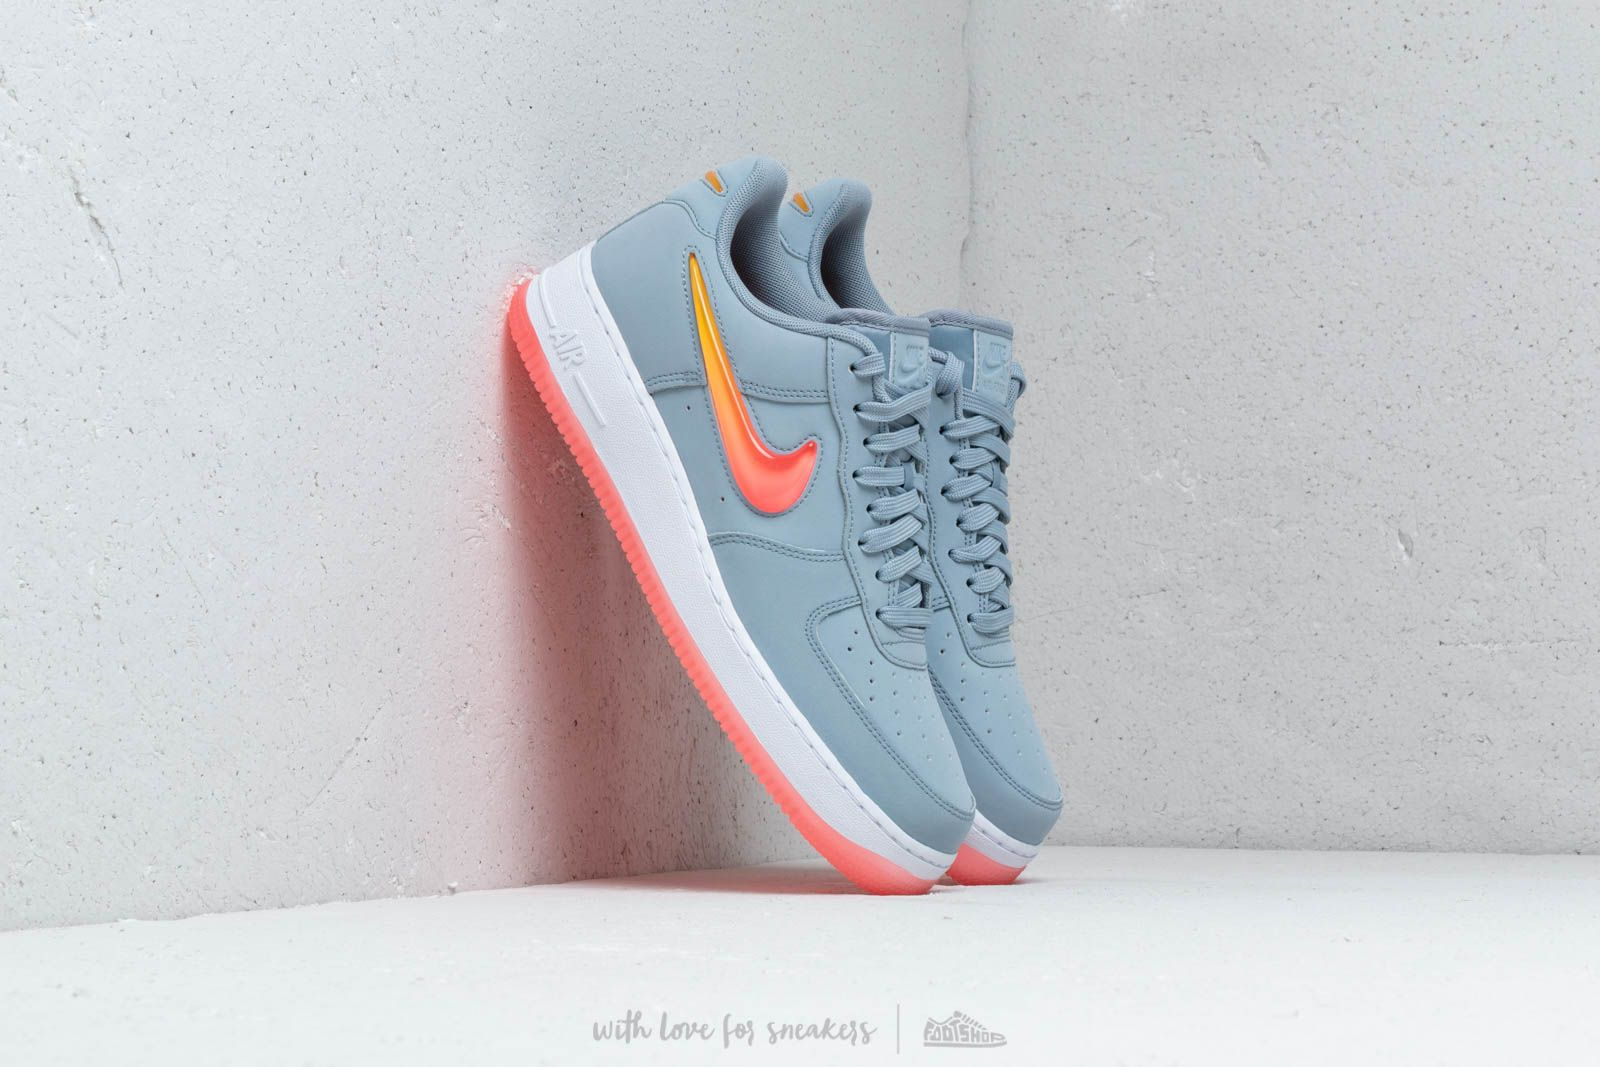 8c00203417 Nike Air Force 1 '07 Premium 2 Obsidian Mist/ Hot Punch-University ...